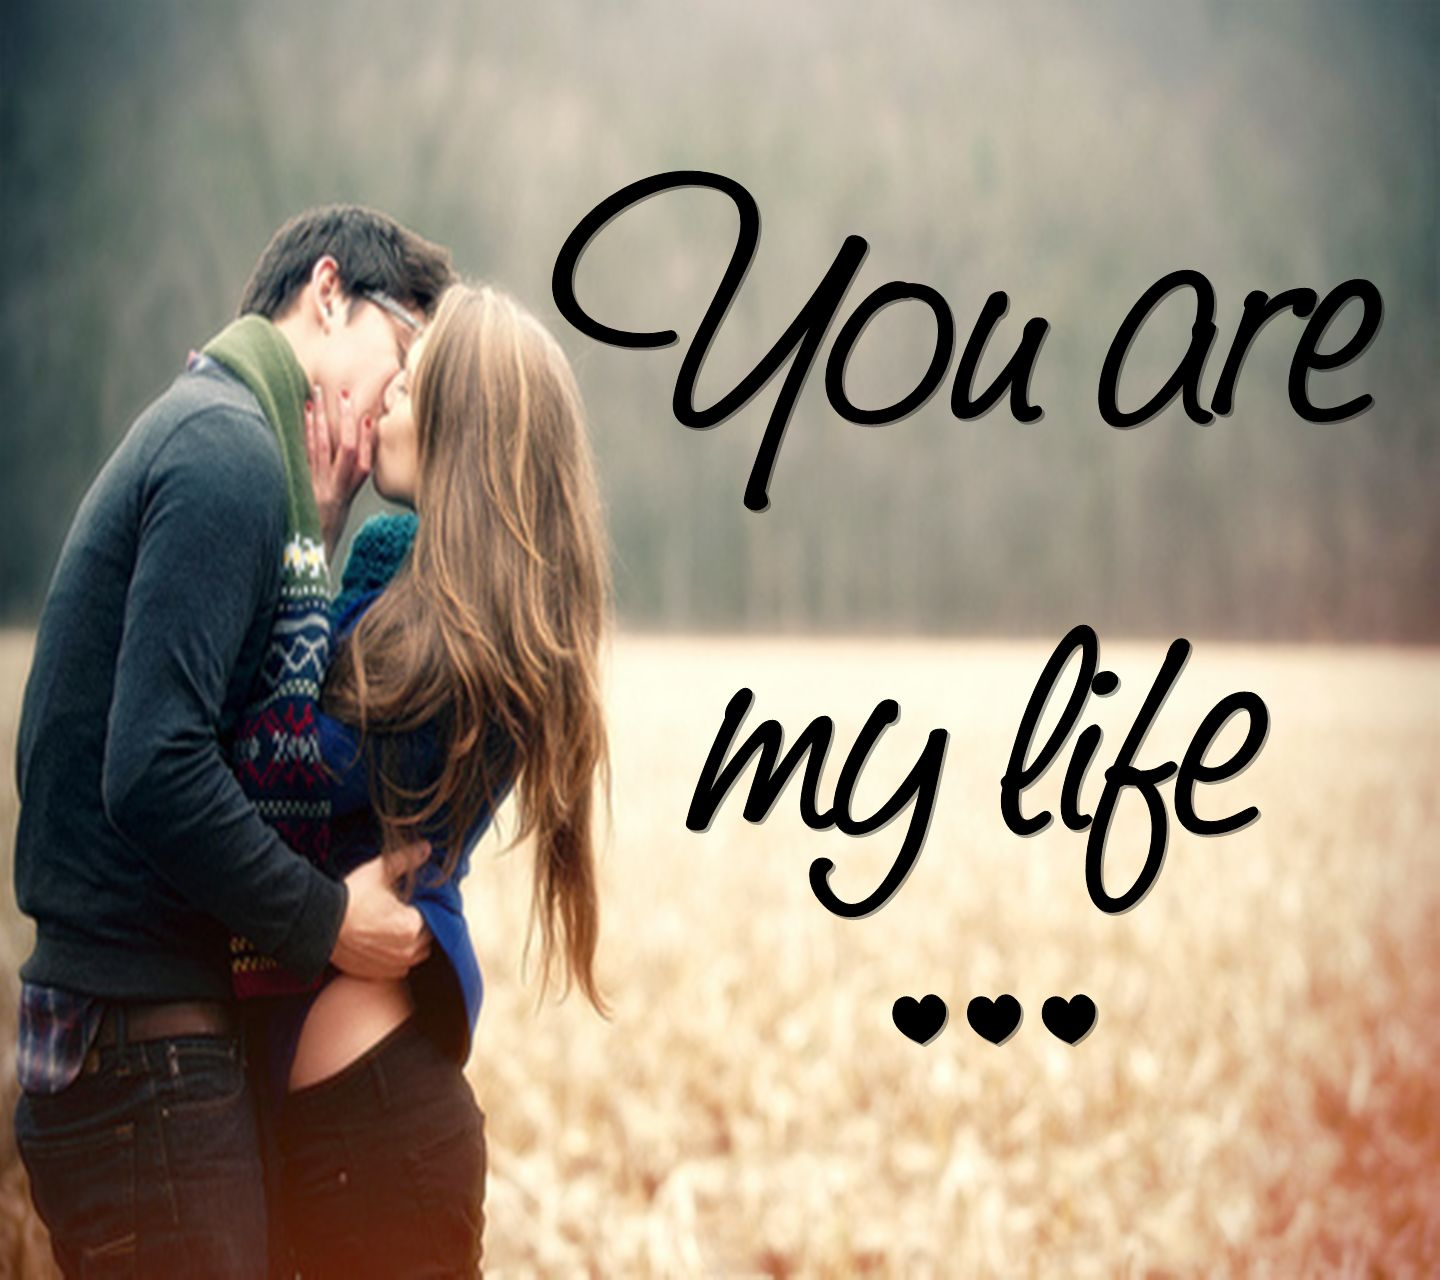 Amazing Images Of Love Couples In Rain With Quotes